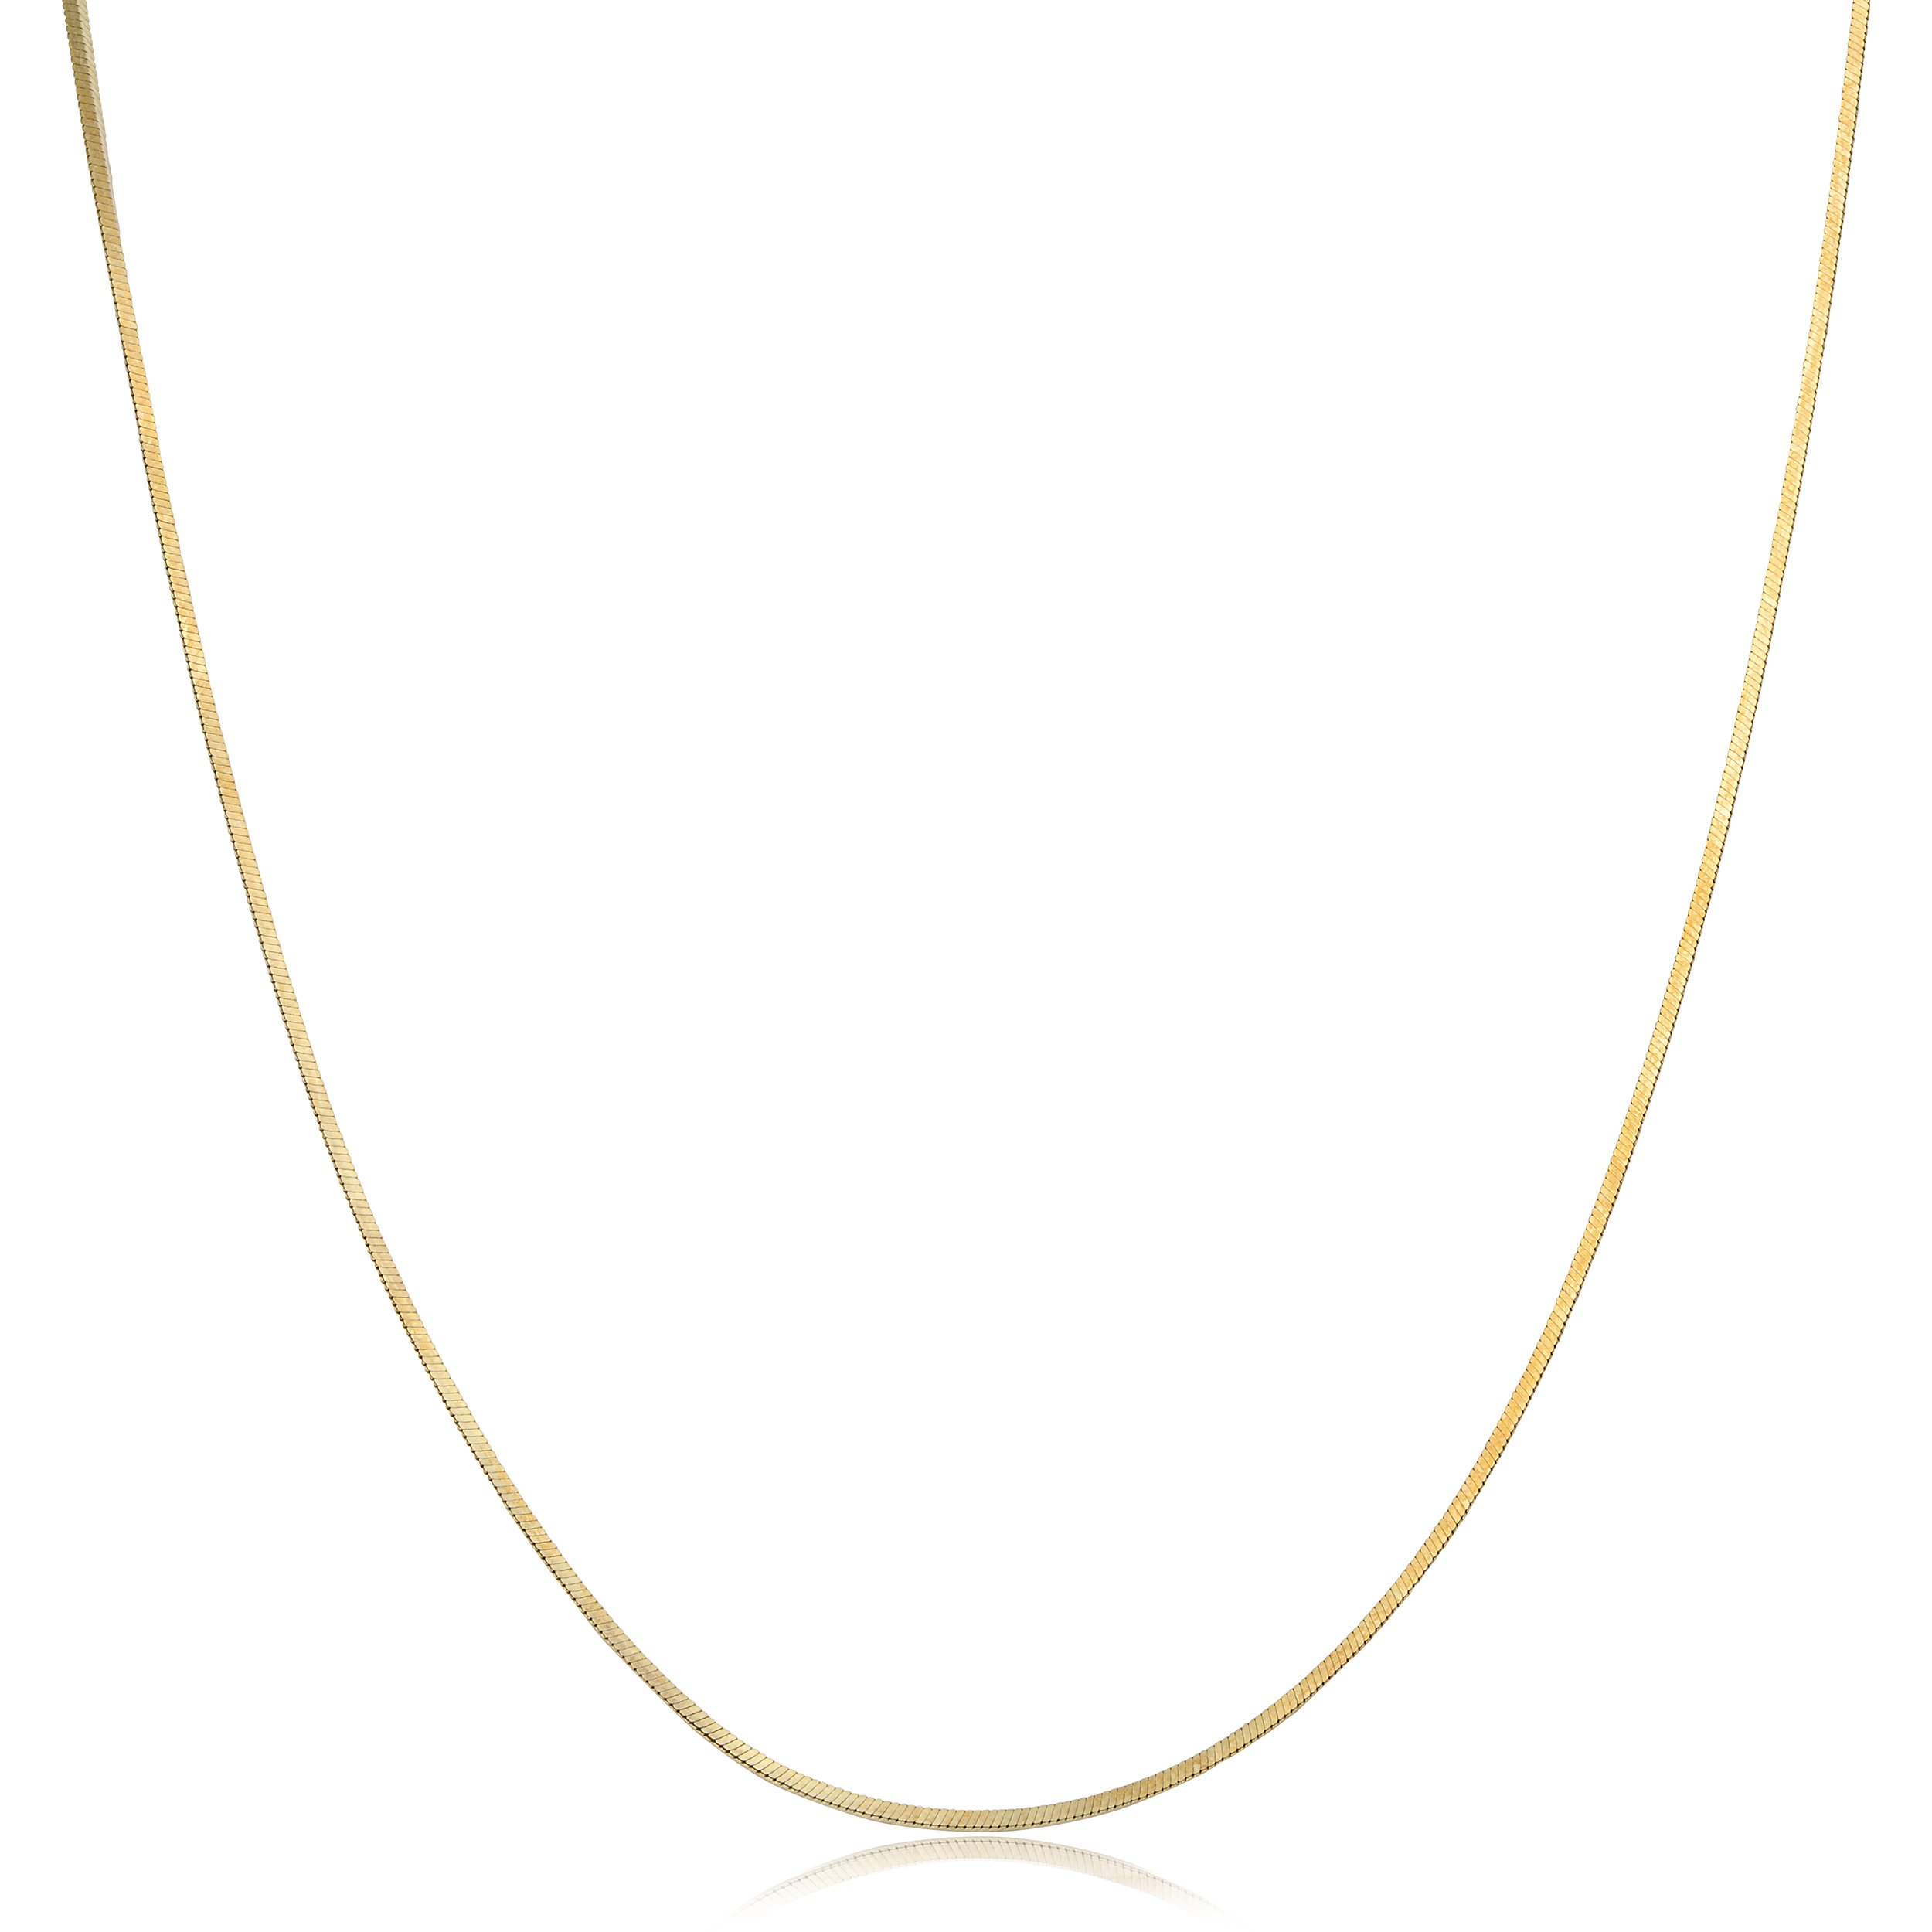 Kooljewelry 14k Yellow Gold Square Snake Chain Necklace (0.9 mm, 18 inch)